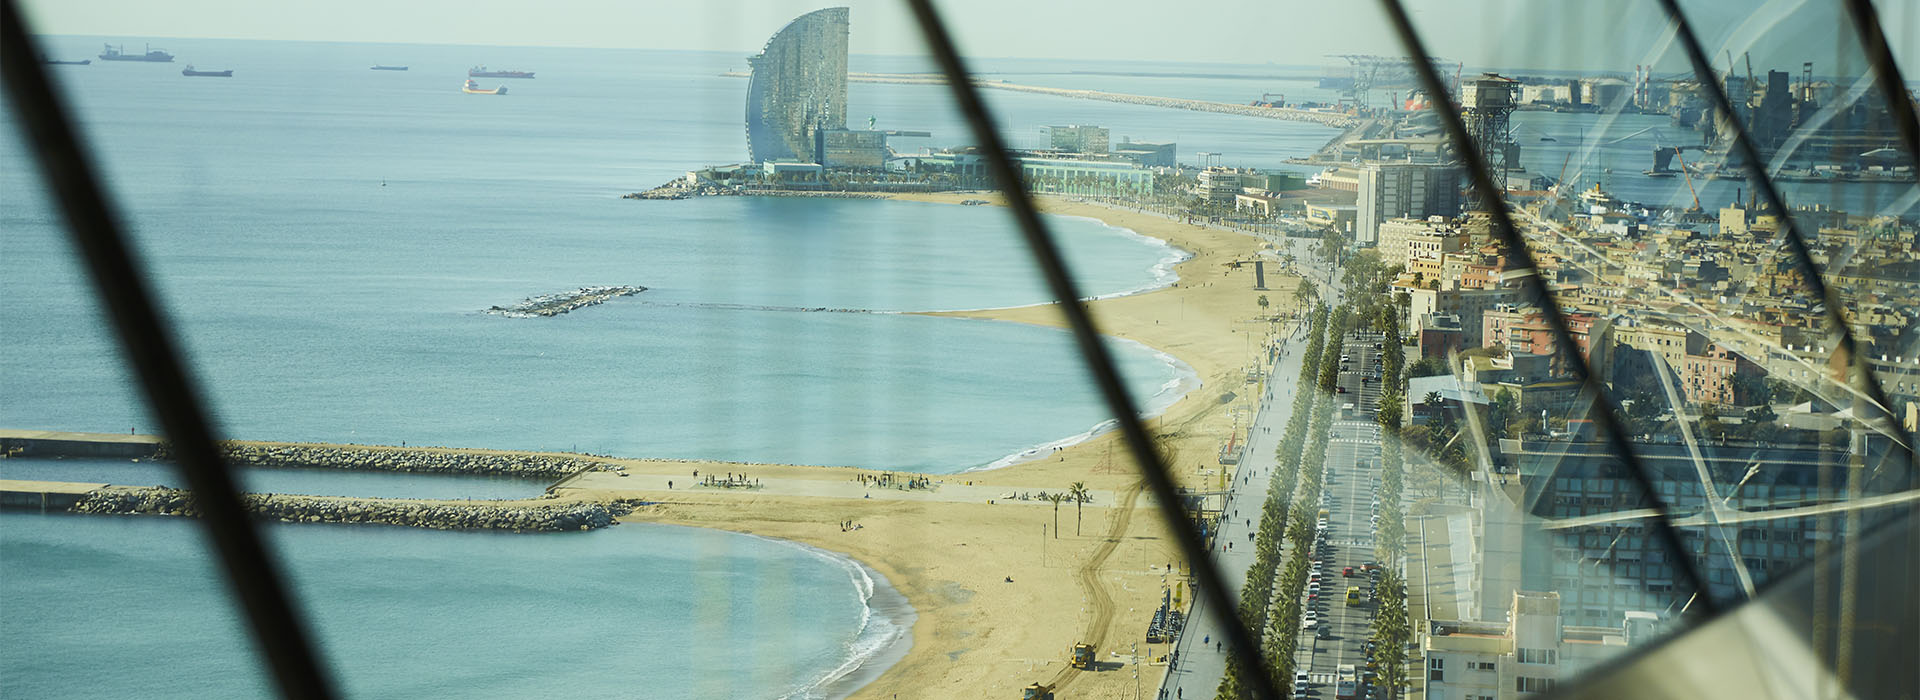 BCN beach view from windows